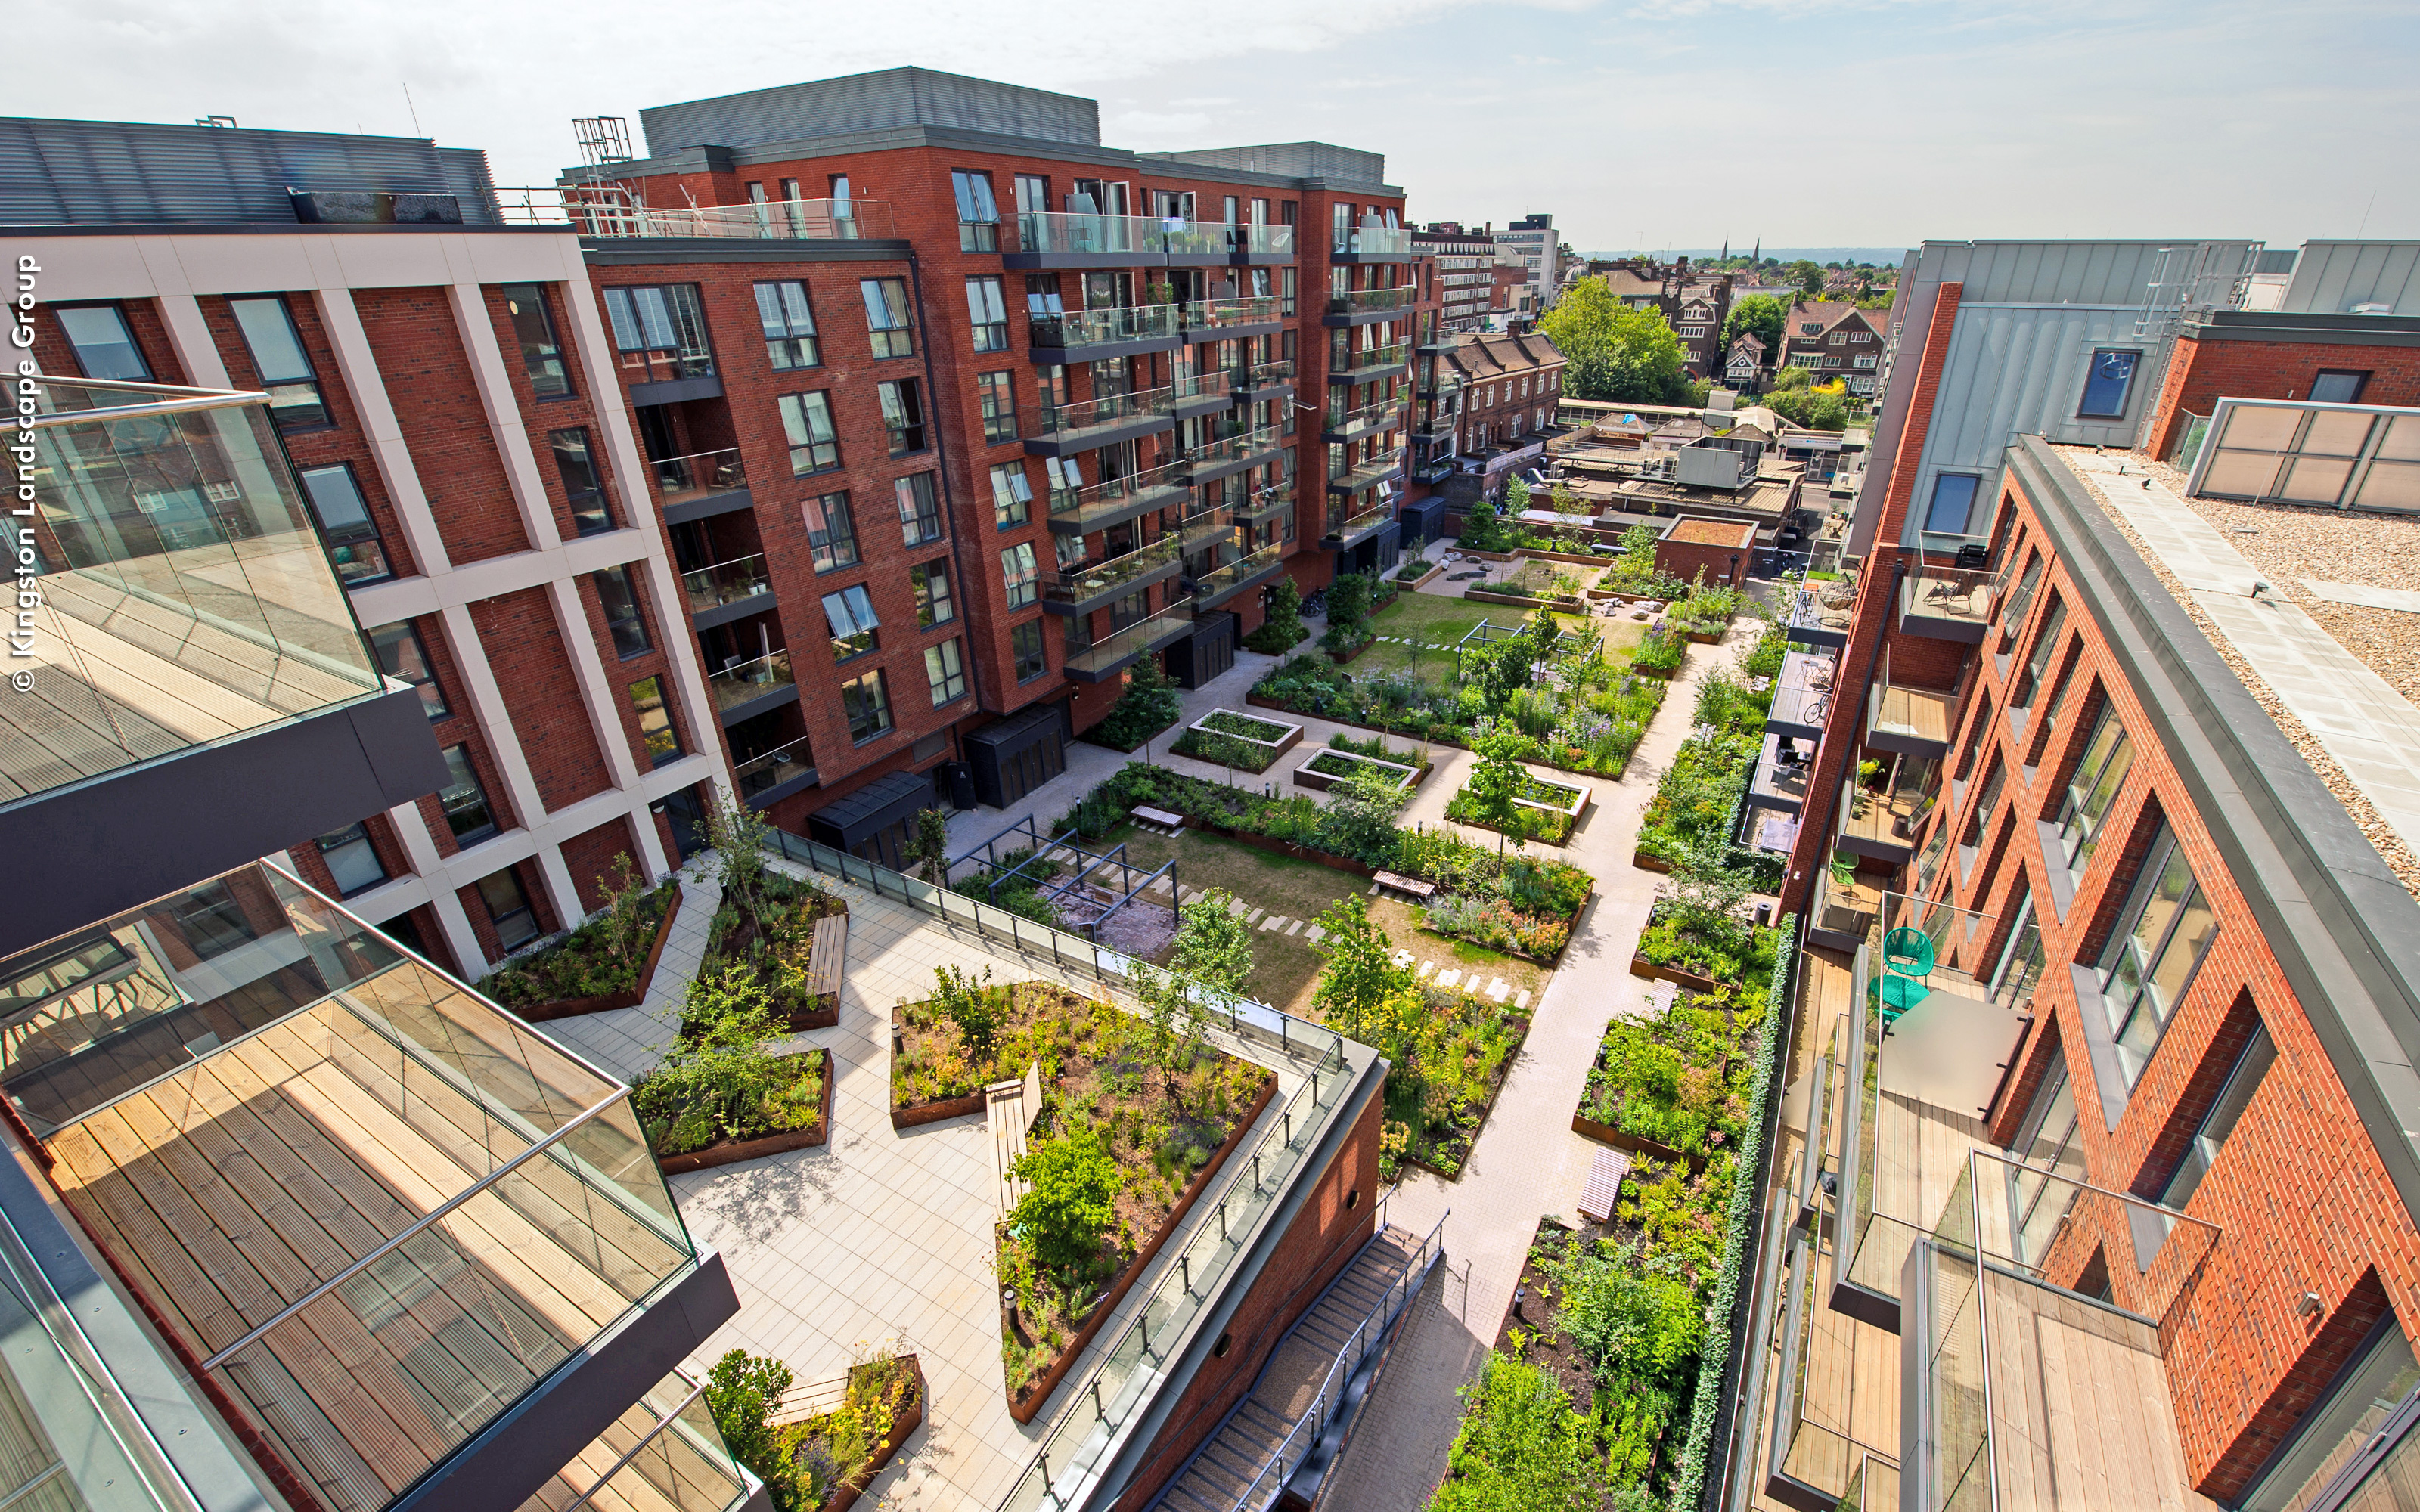 Streatham Hill London Zinco Green Roof Systems Uk